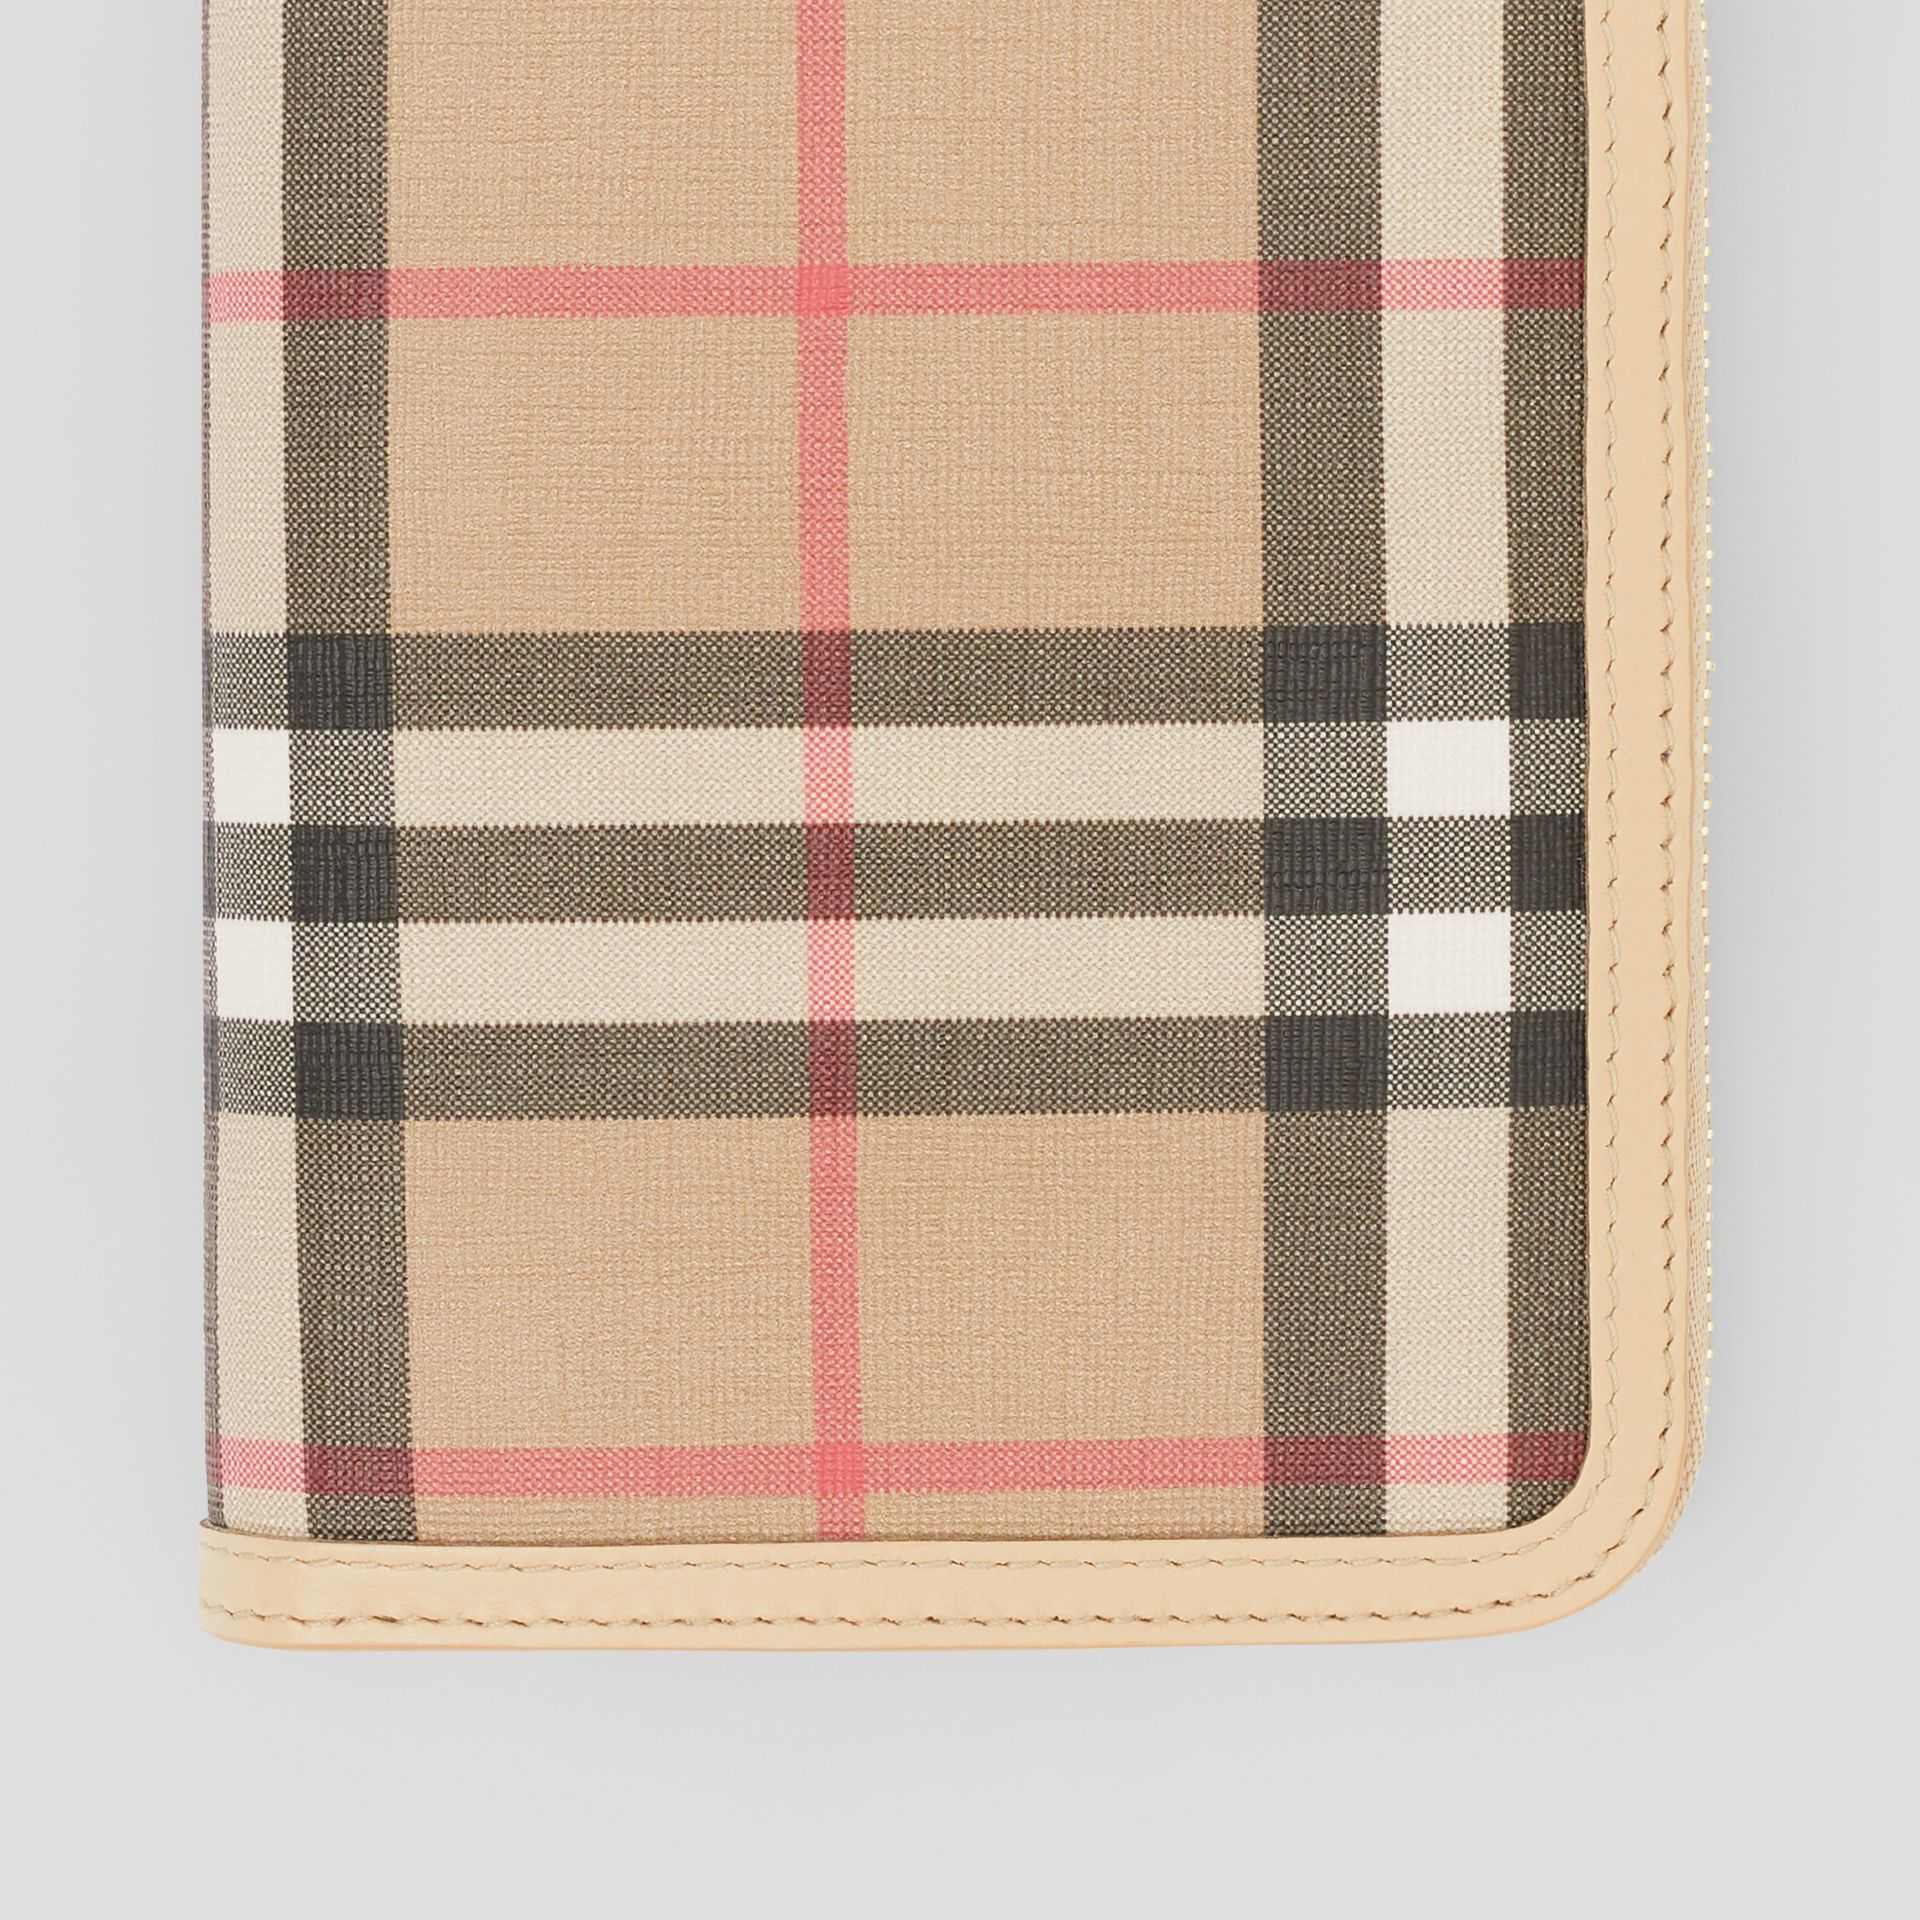 Vintage Check E-canvas and Leather Wallet in Beige - Women | Burberry Hong Kong S.A.R - gallery image 1